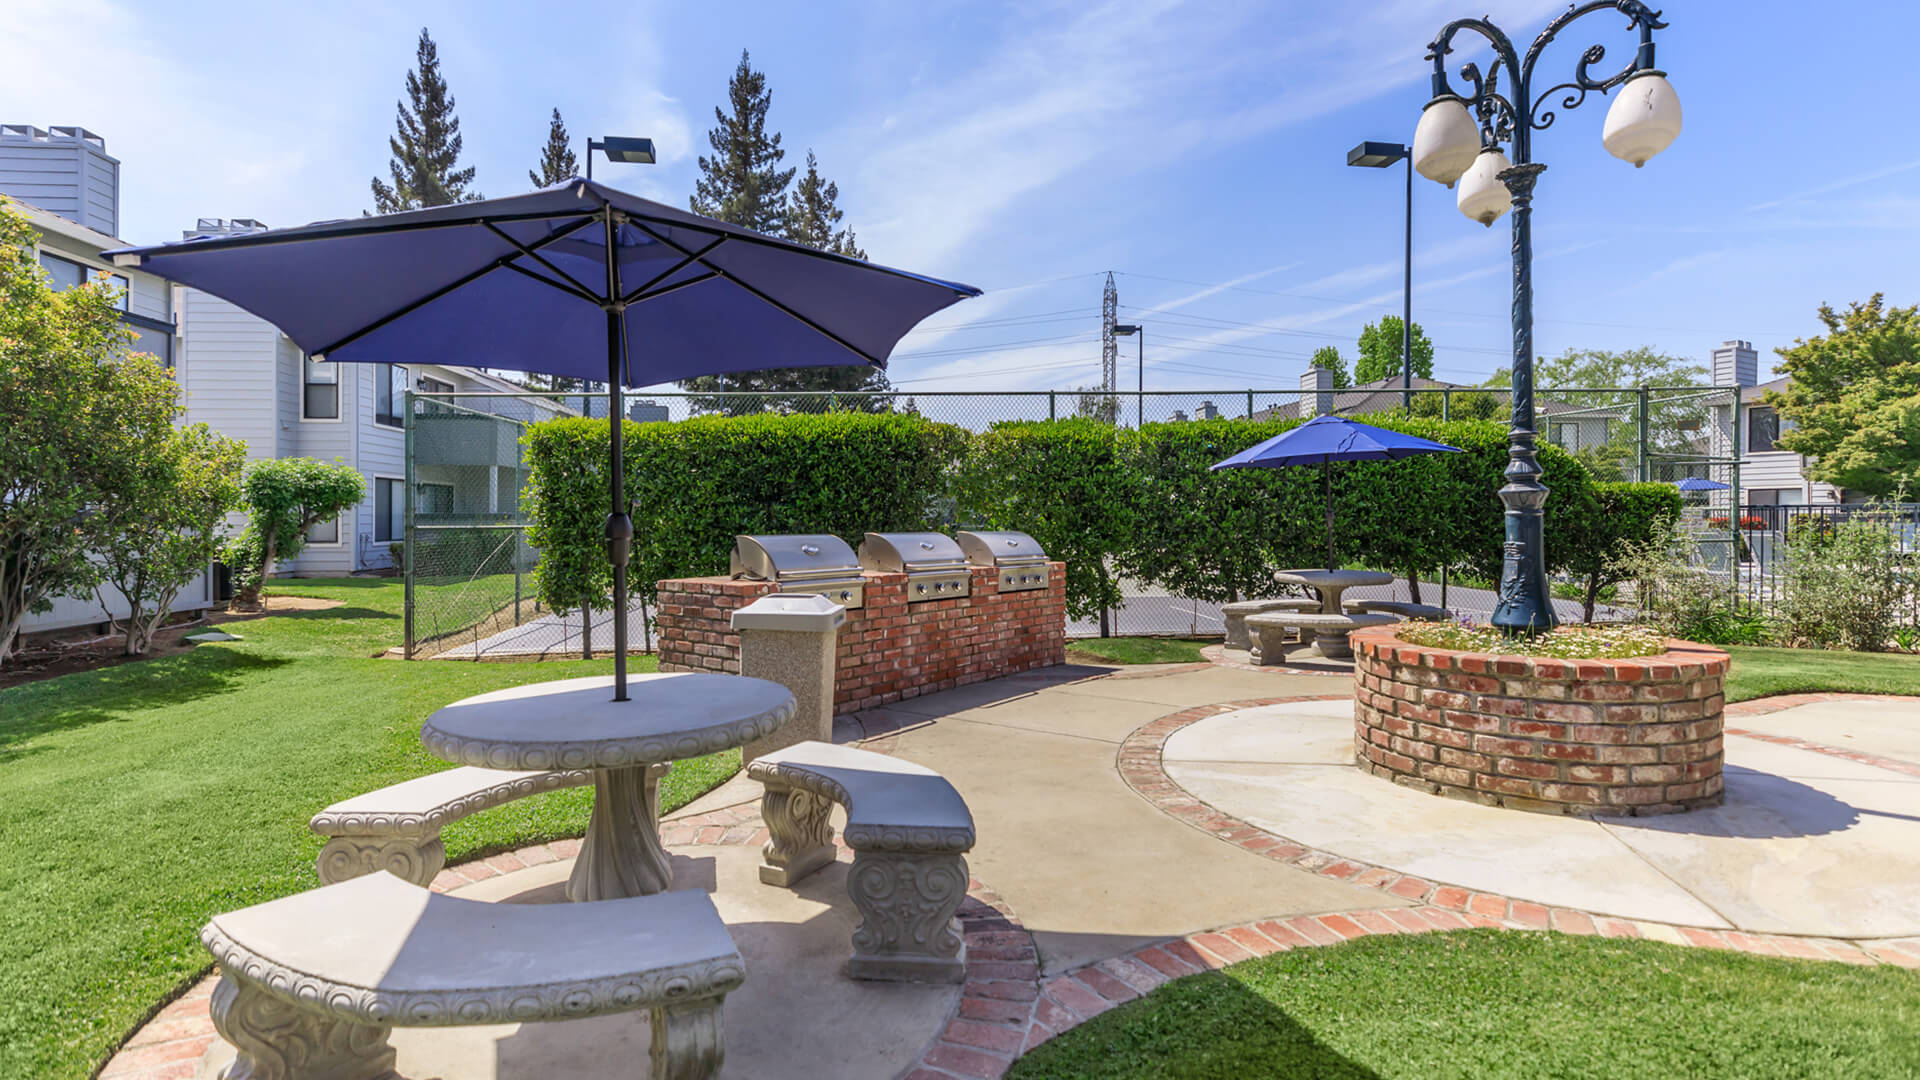 Summer Place - Apartment Homes in Fresno, CA